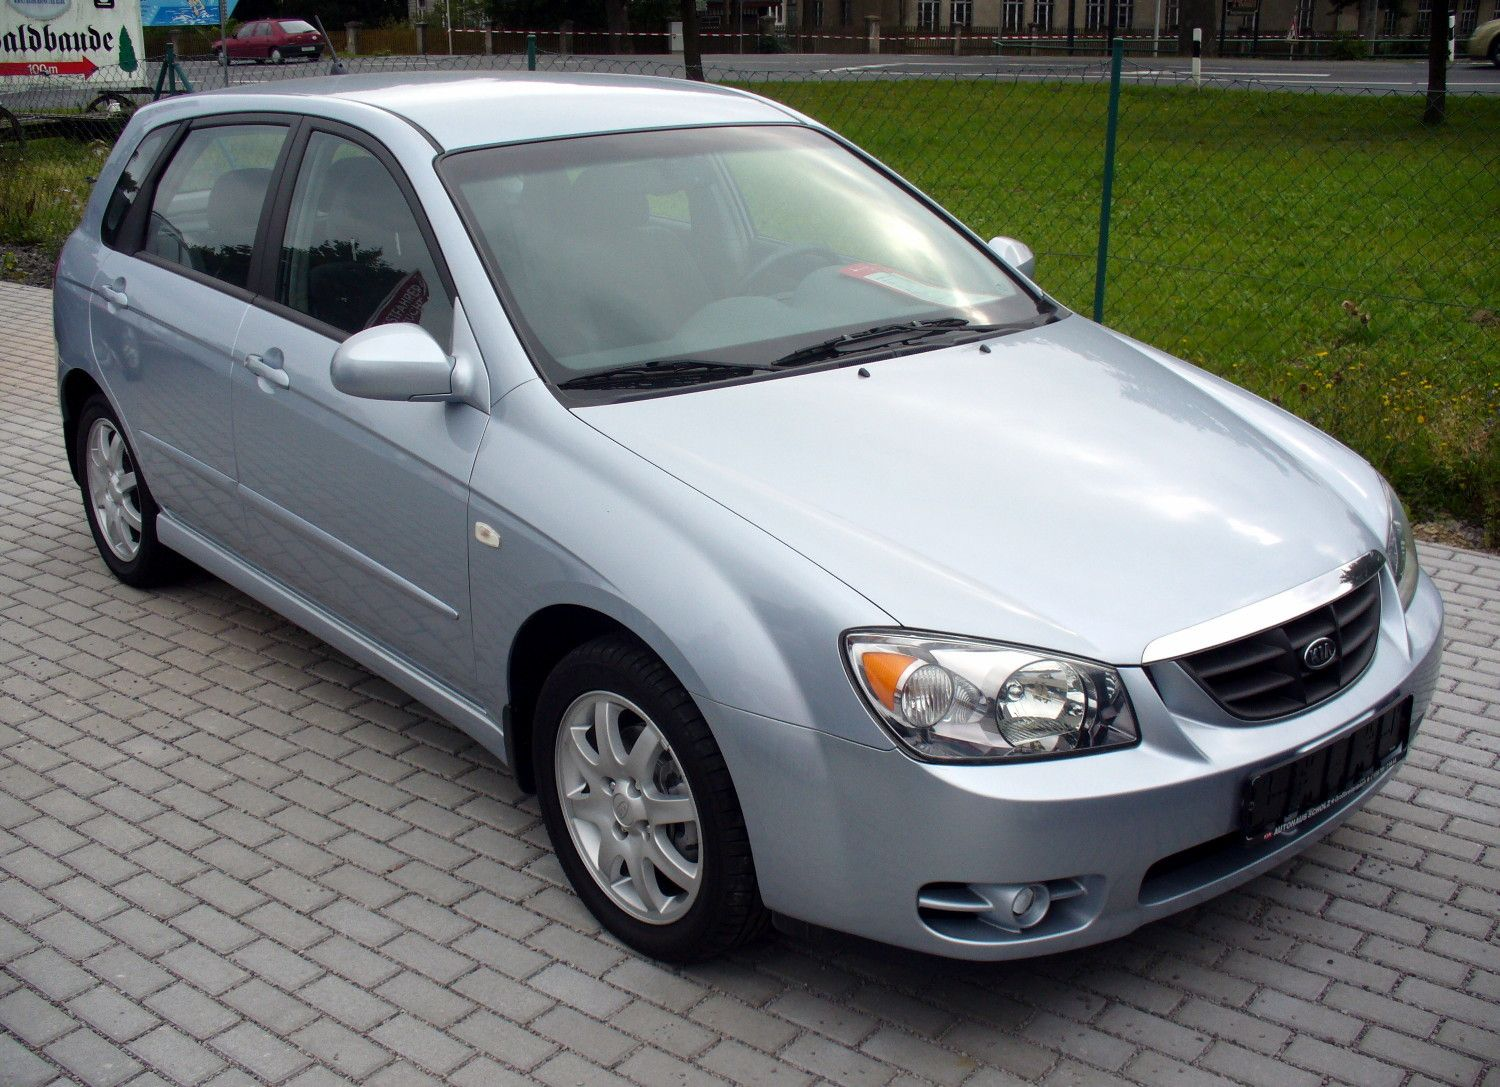 kia cerato 2004 2008 service manual sedan kia service repair pdf rh pinterest com Kia Sedona Interior 2006 kia sedona repair manual pdf